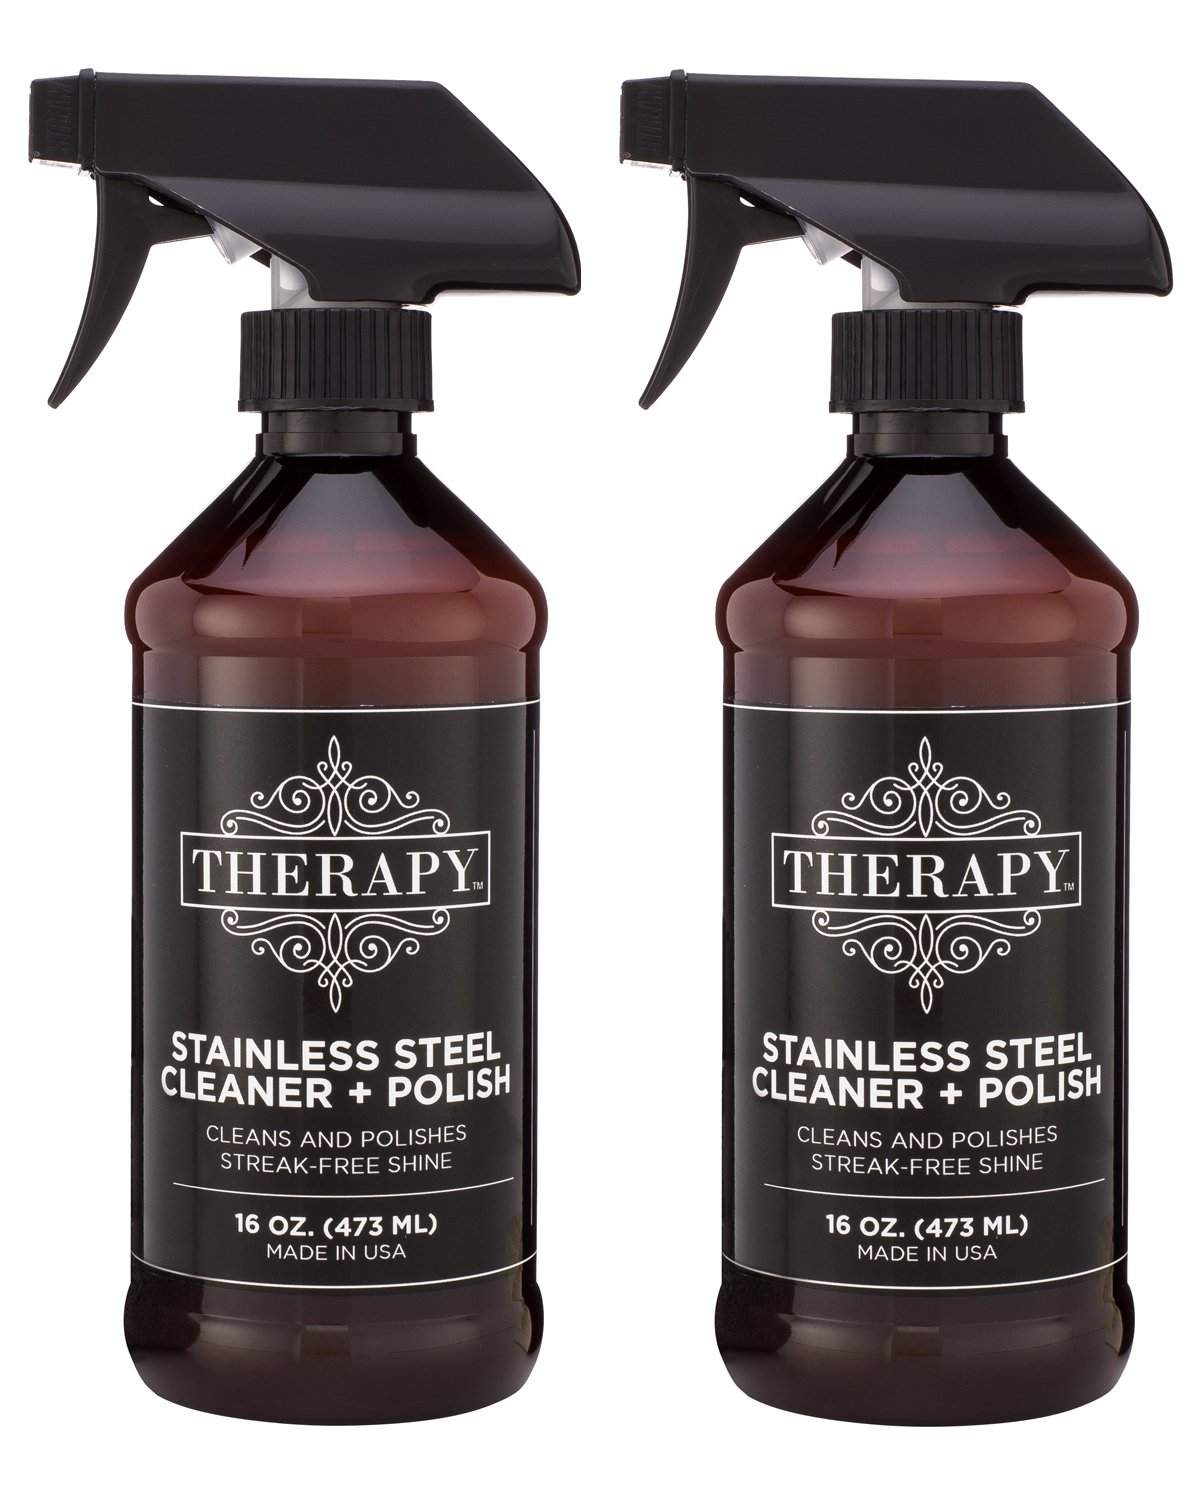 Therapy Premium Stainless Steel Cleaner & Polish 16 oz. (2 Pack) by Therapy (Image #1)